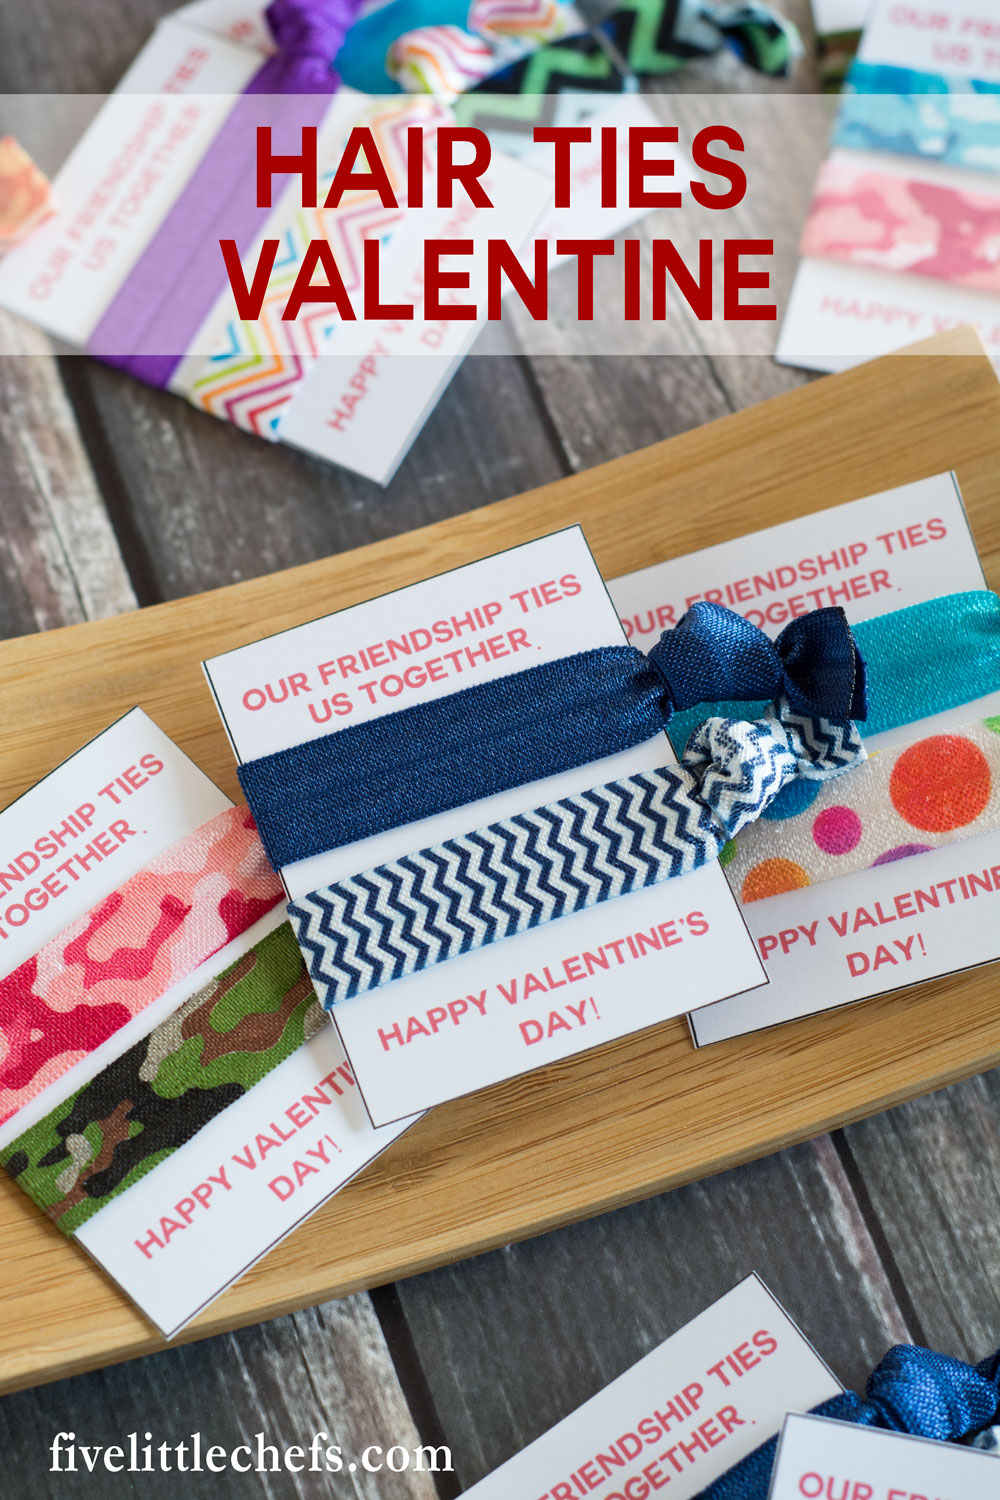 Hair ties classroom valentine ideas for kids are cute, cheap and easy. Use the printables then add a DIY no crease hair tie. A great valentine's day idea for friends and family. Works as a fun no candy option for school.